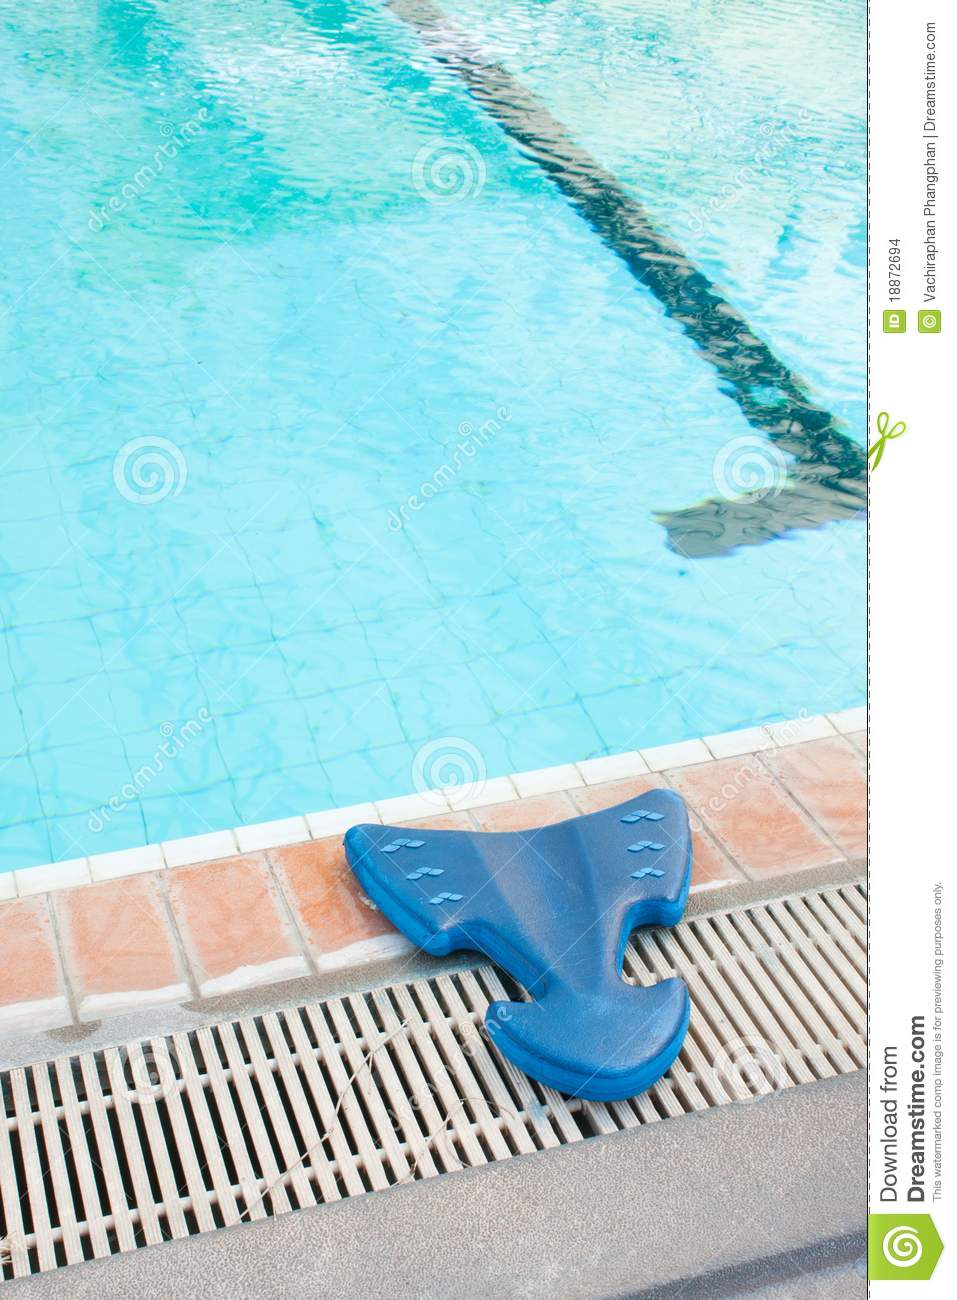 The Beginner's Guide to Swimming Equipment / Gear